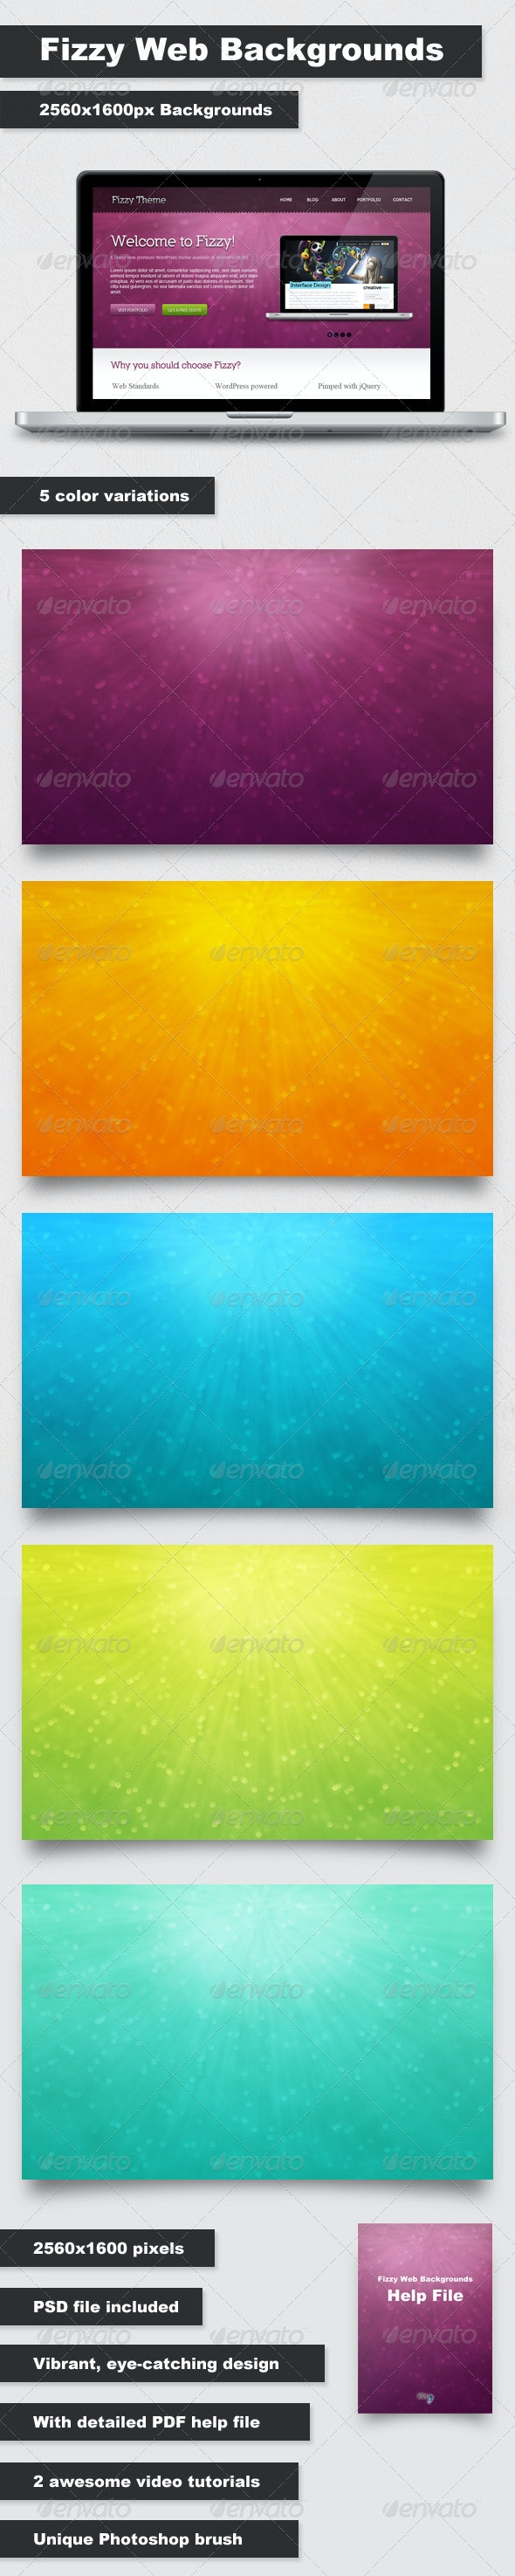 Fizzy Web Backgrounds - Abstract Backgrounds